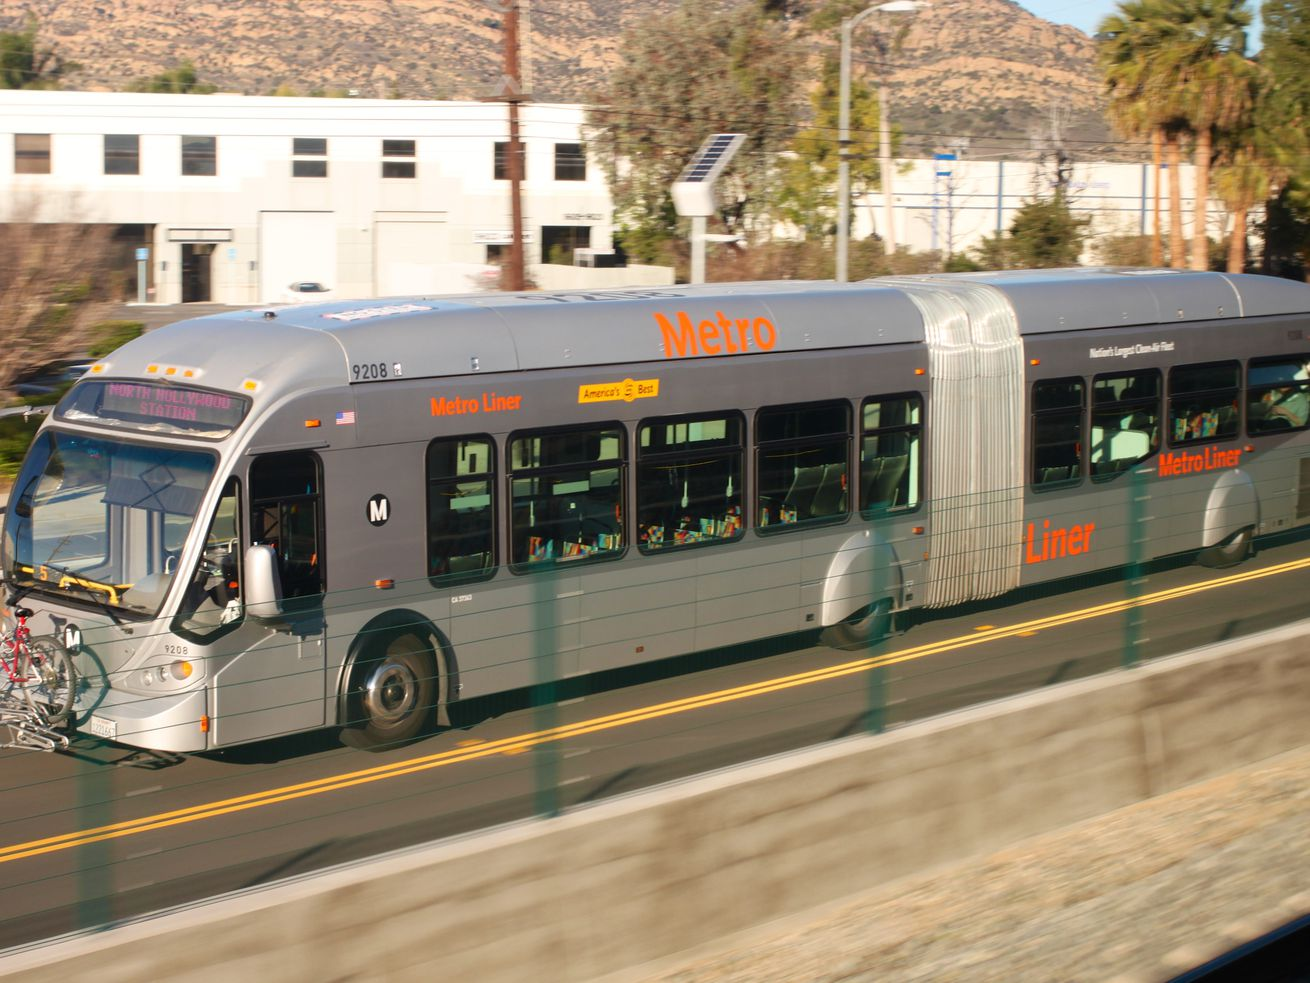 Trips on the Orange Line could be reduced by 16 minutes.